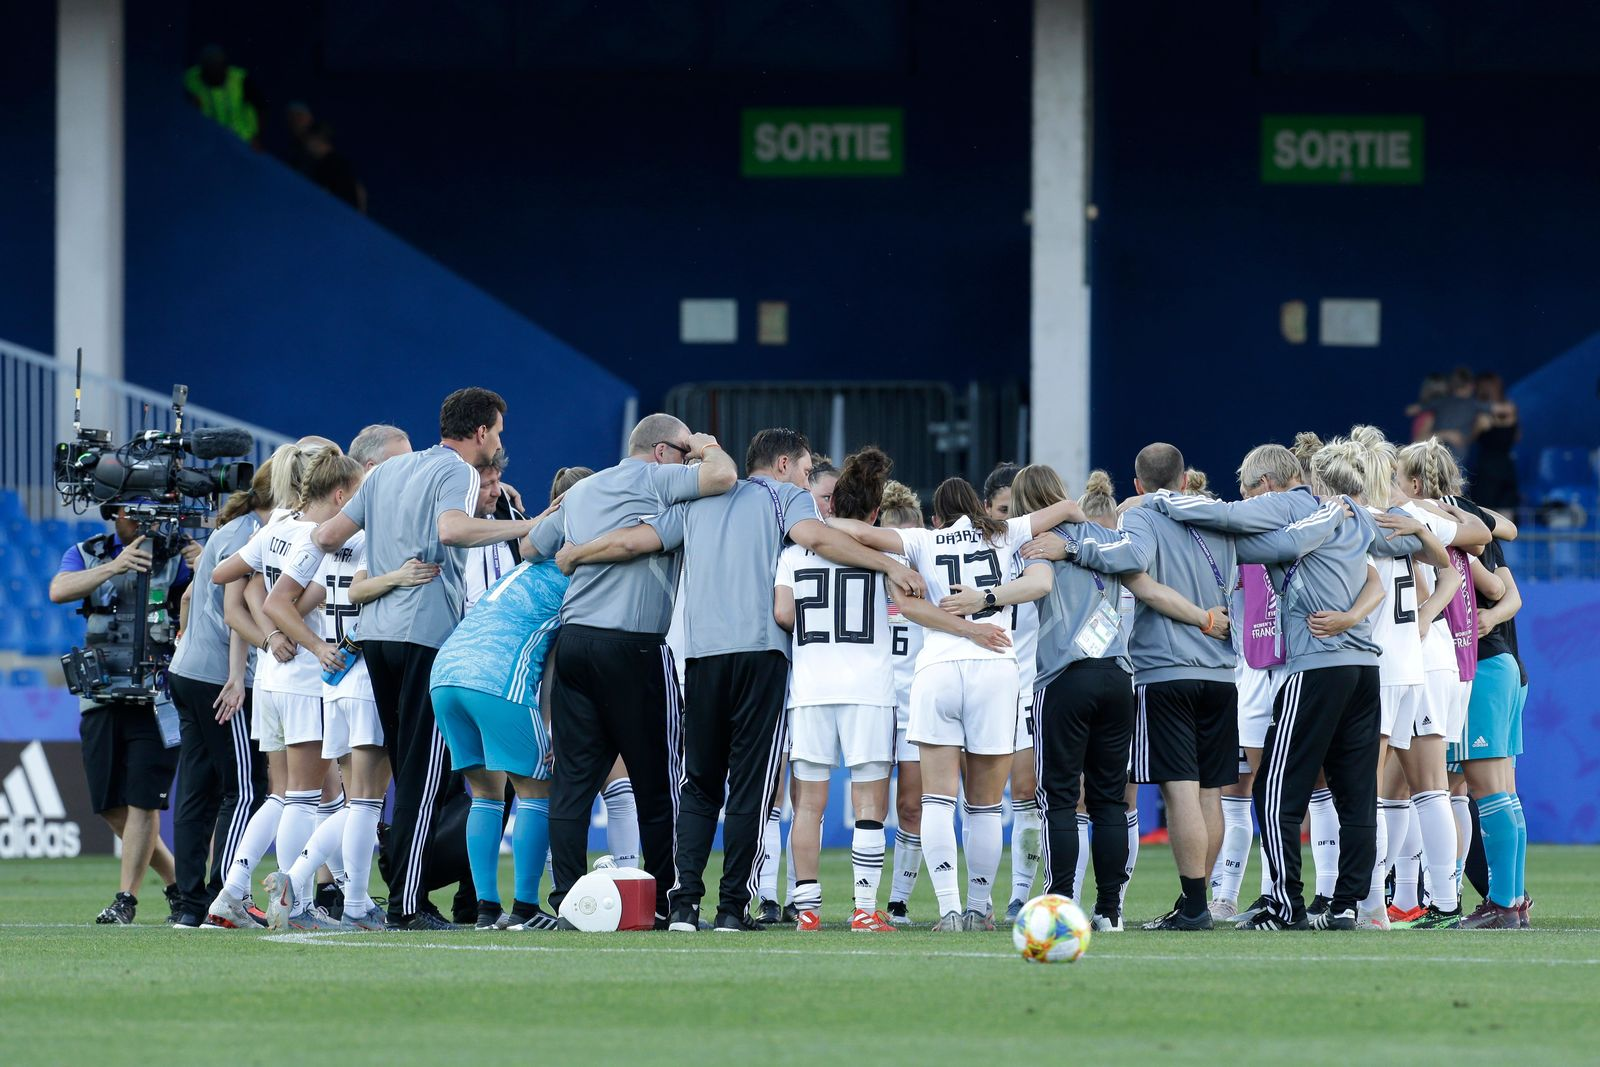 Germany team gather at the end of the Women's World Cup Group B soccer match between South Africa and Germany at the Stade de la Mosson in Montpellier, France, Monday, June 17, 2019. (AP Photo/Claude Paris)